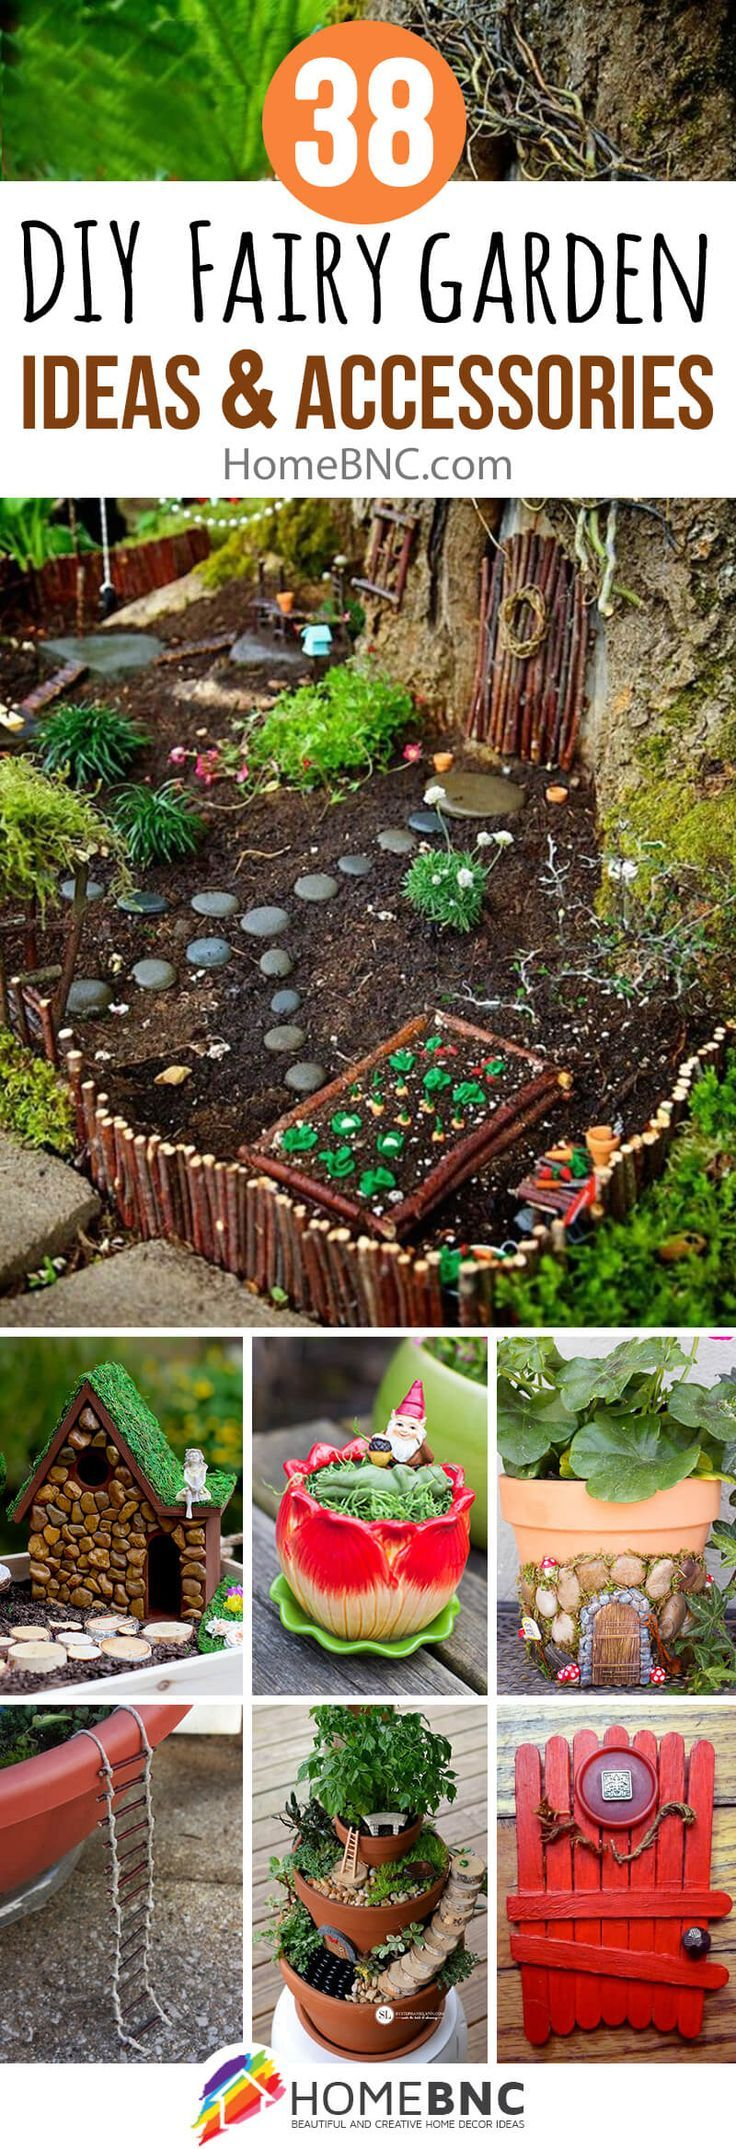 DIY Fairy Garden Accessories - Tap The Link Now To Find Decor That ...